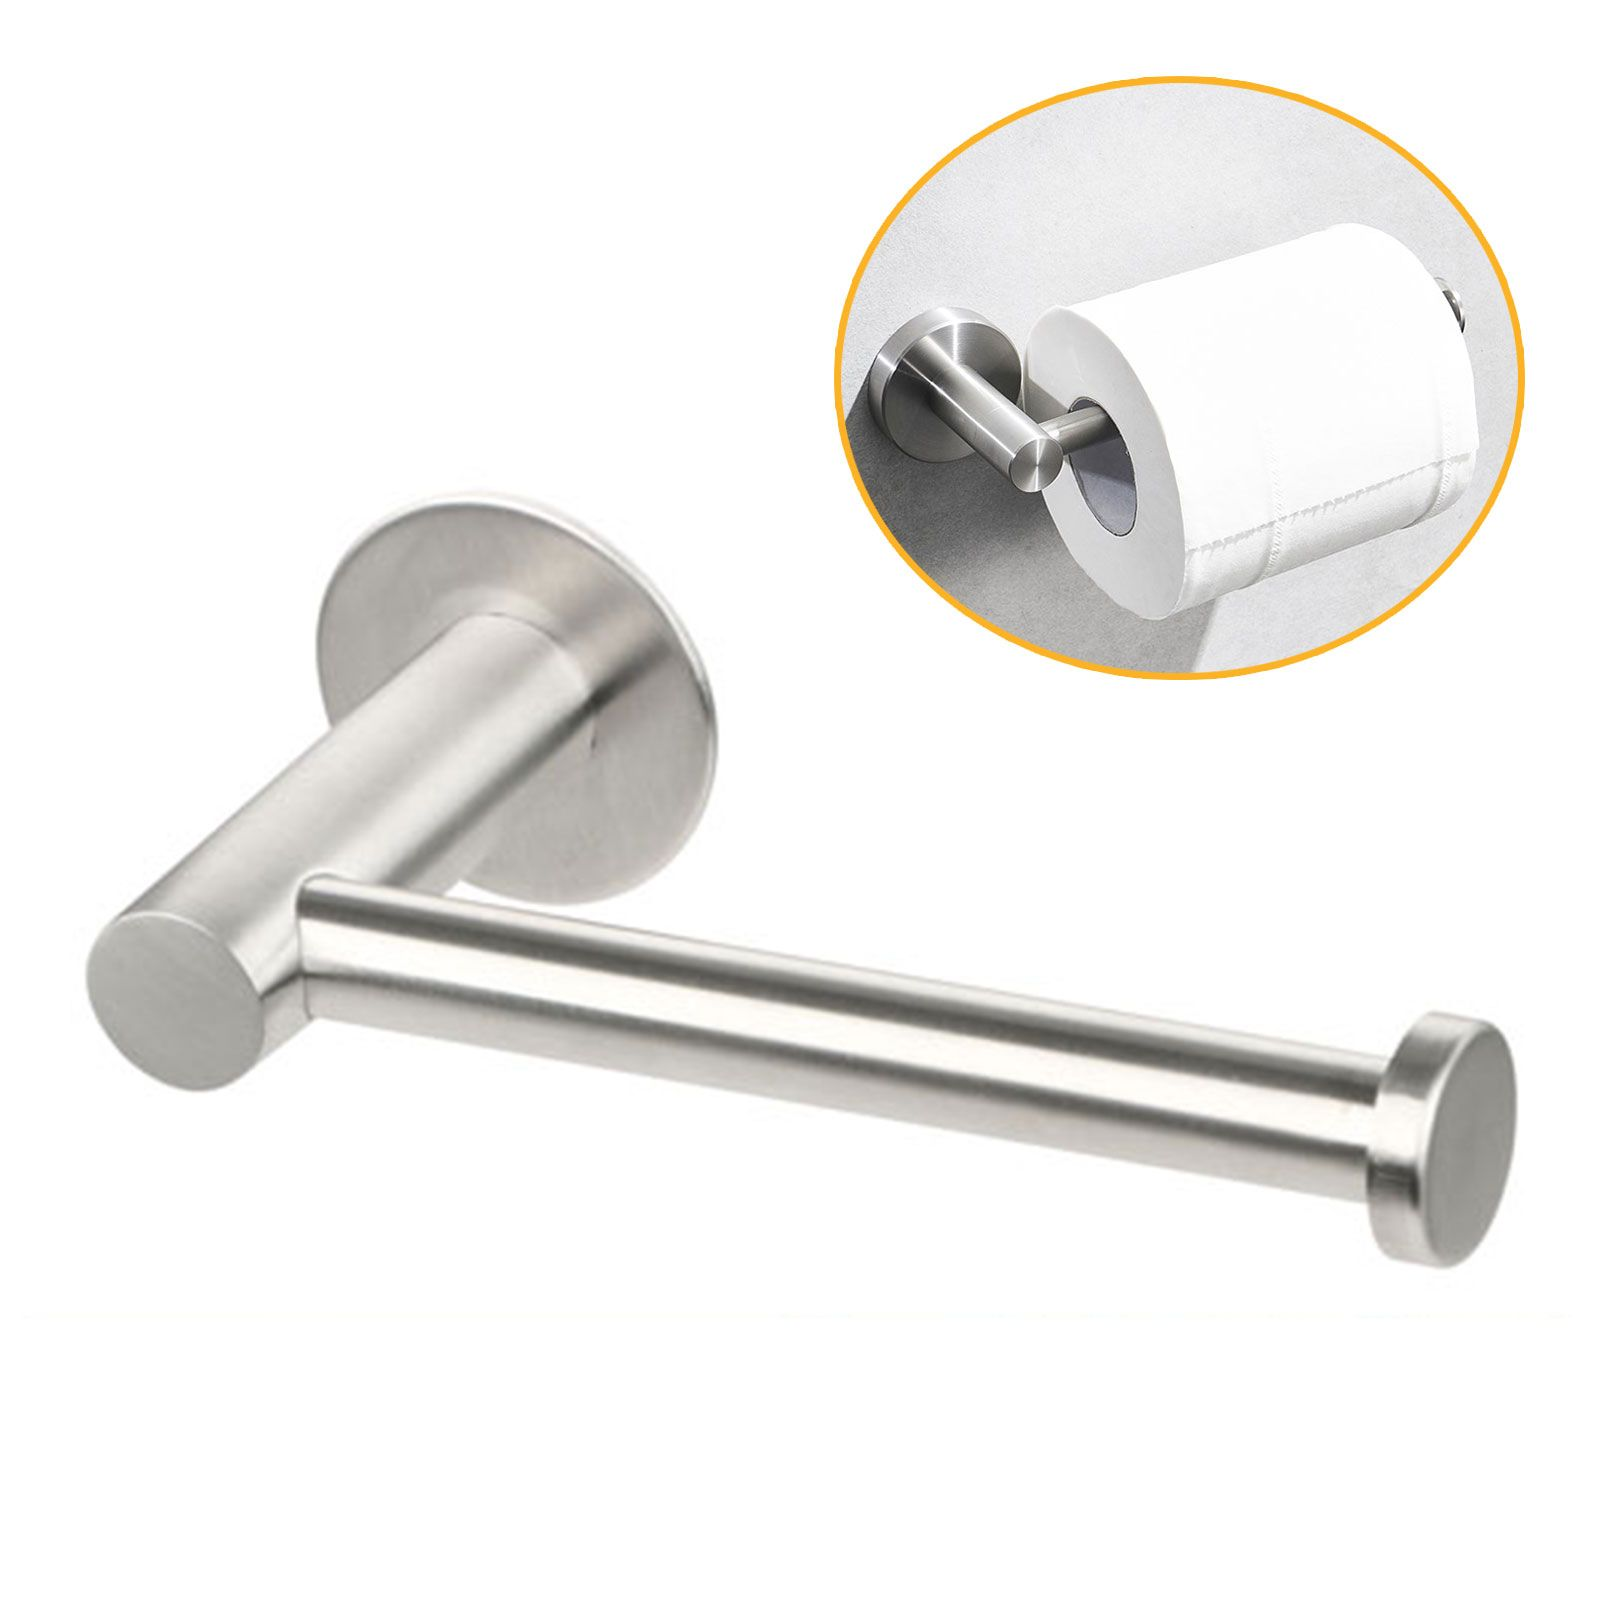 Eeekit Toilet Paper Holder Self Adhesive Bathroom Roll Holder Stick On Wall Mounted Stainless Steel Bathroom Tissue Paper Towel Roll Holder Bath Hardware Bath Toilet Paper Holder Paper Towel Holder